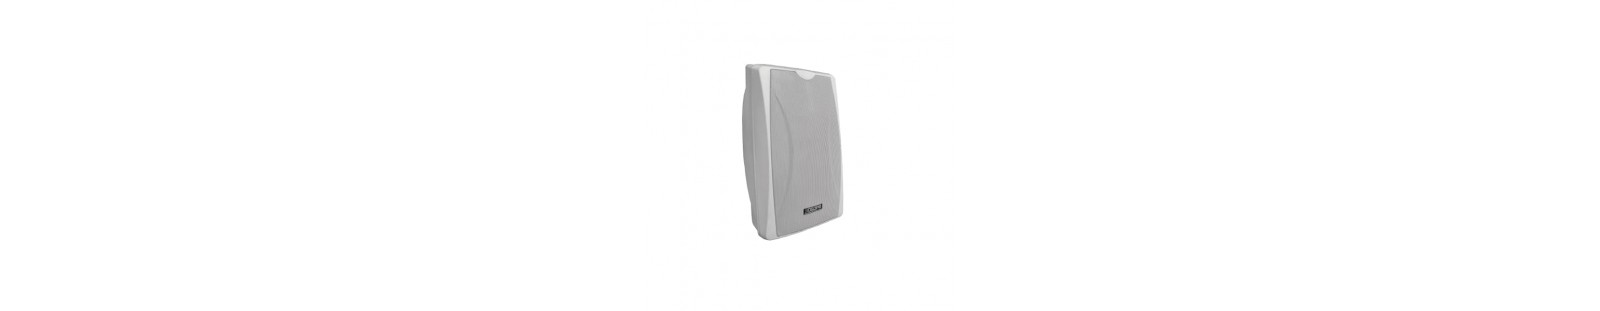 DSPPA MAG2450 Dante Active Wall-Mounted Speaker